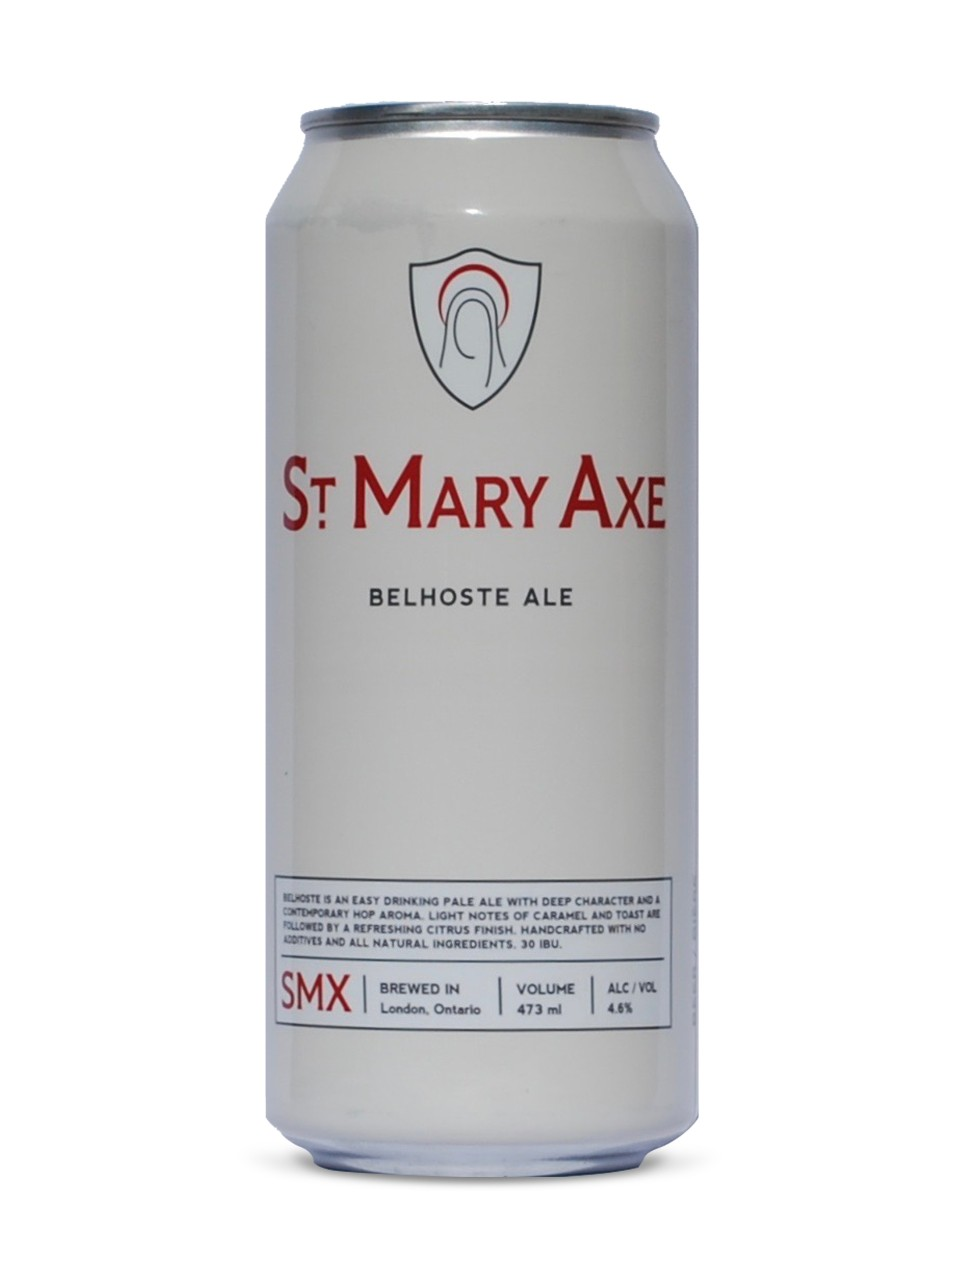 Image for St. Mary Axe Belhoste Ale from LCBO